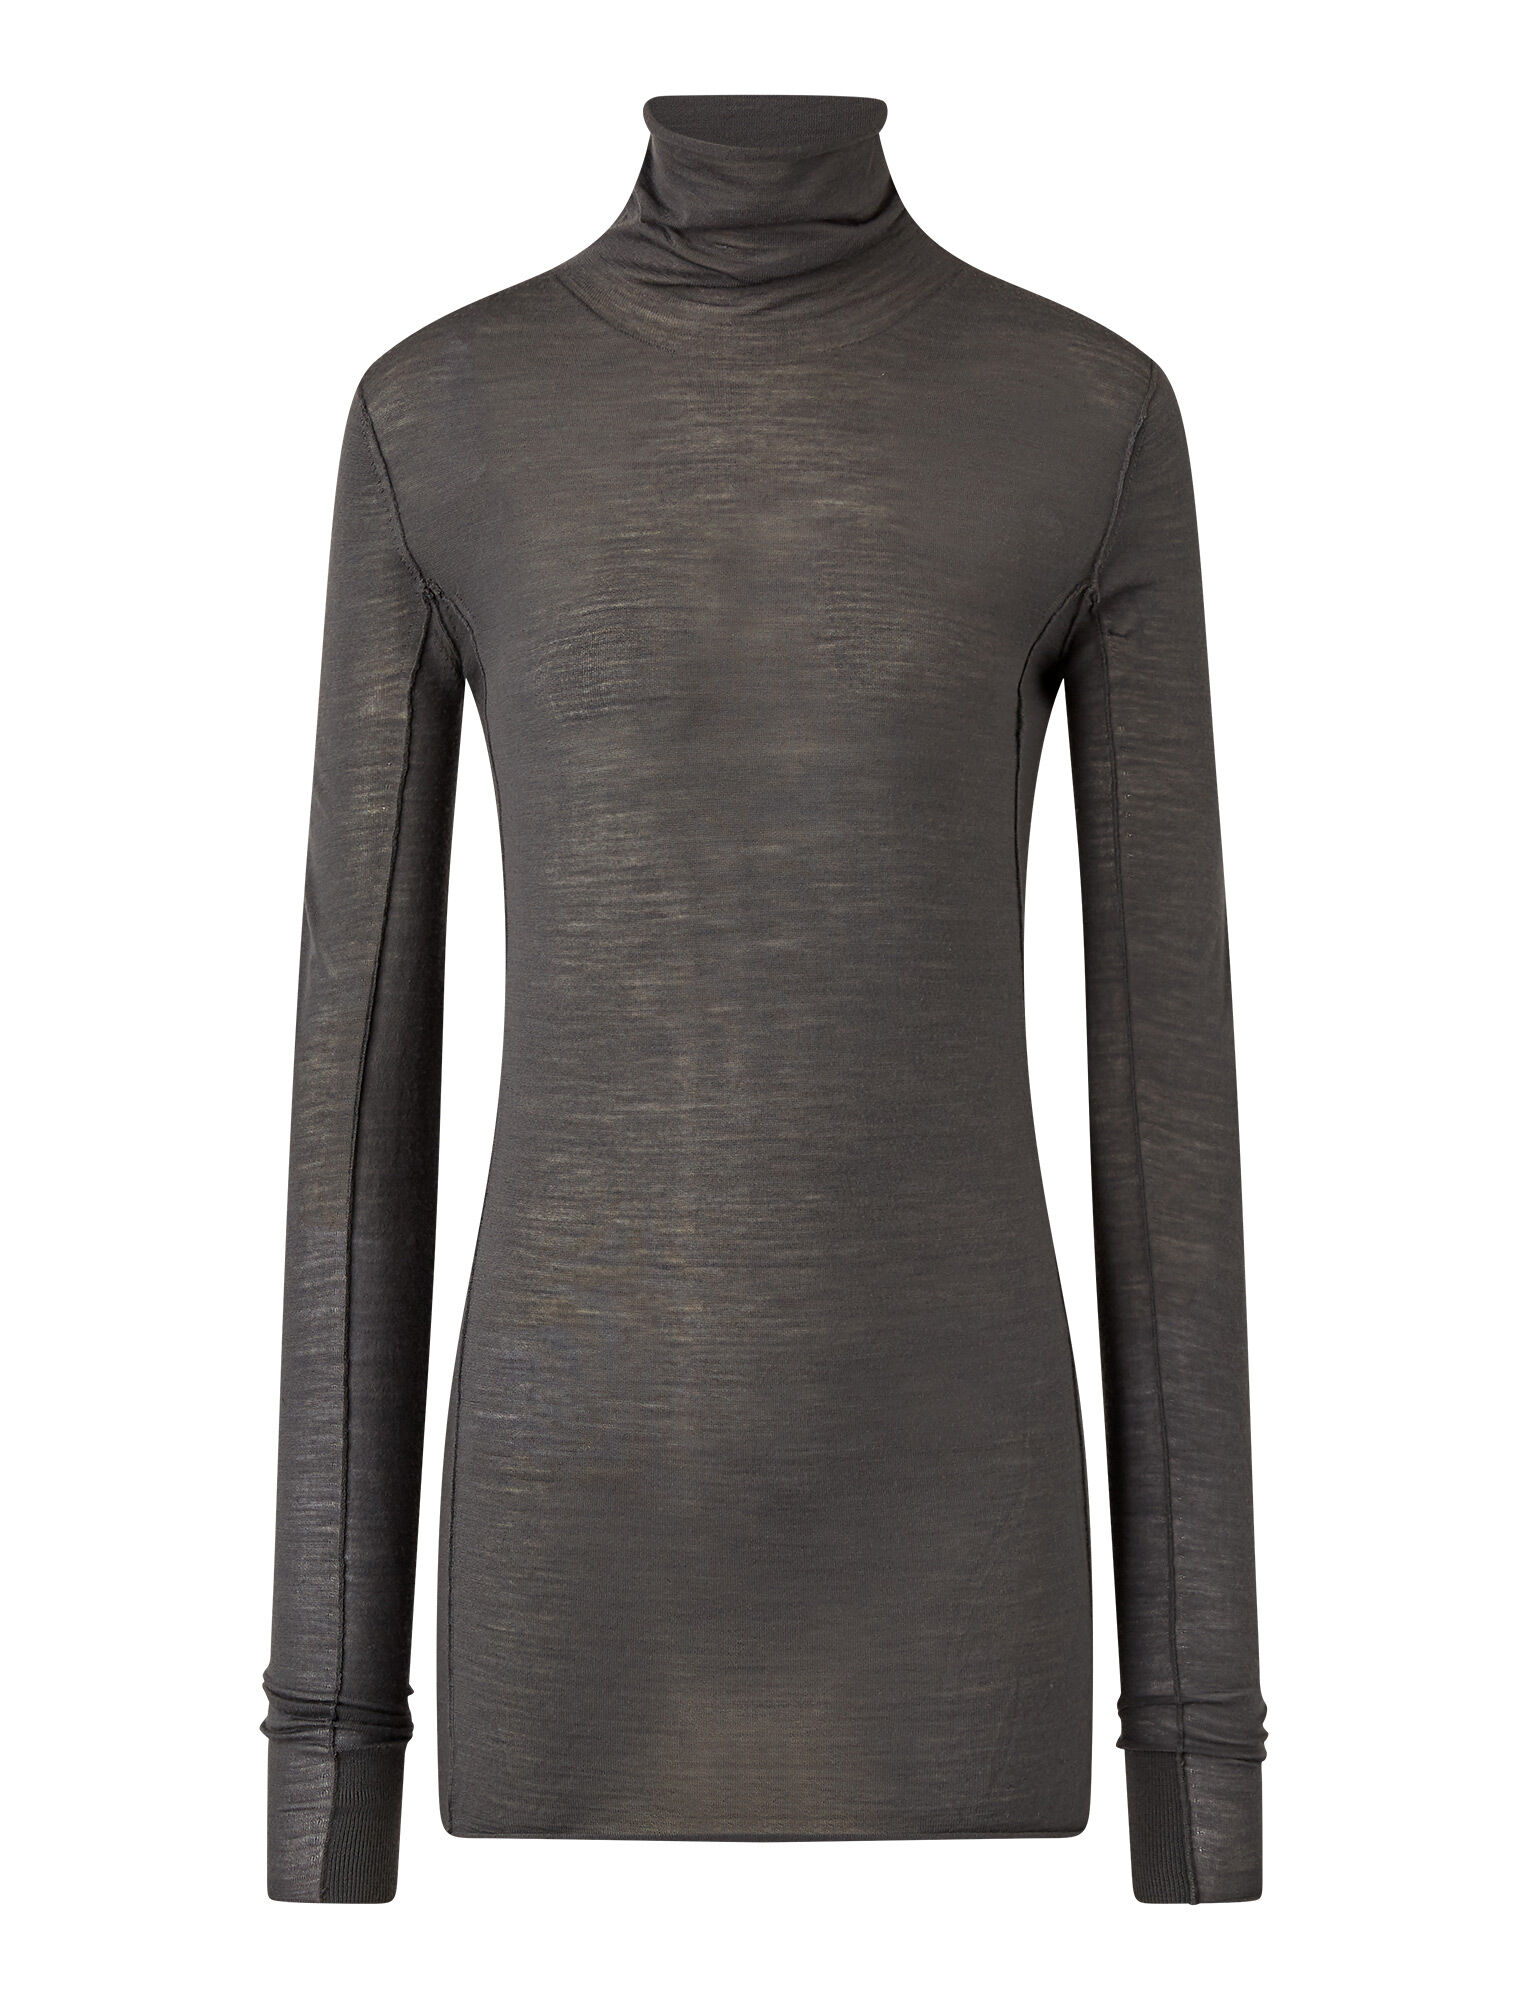 Joseph, High Neck Superfine Merinos Knit, in Anthracite